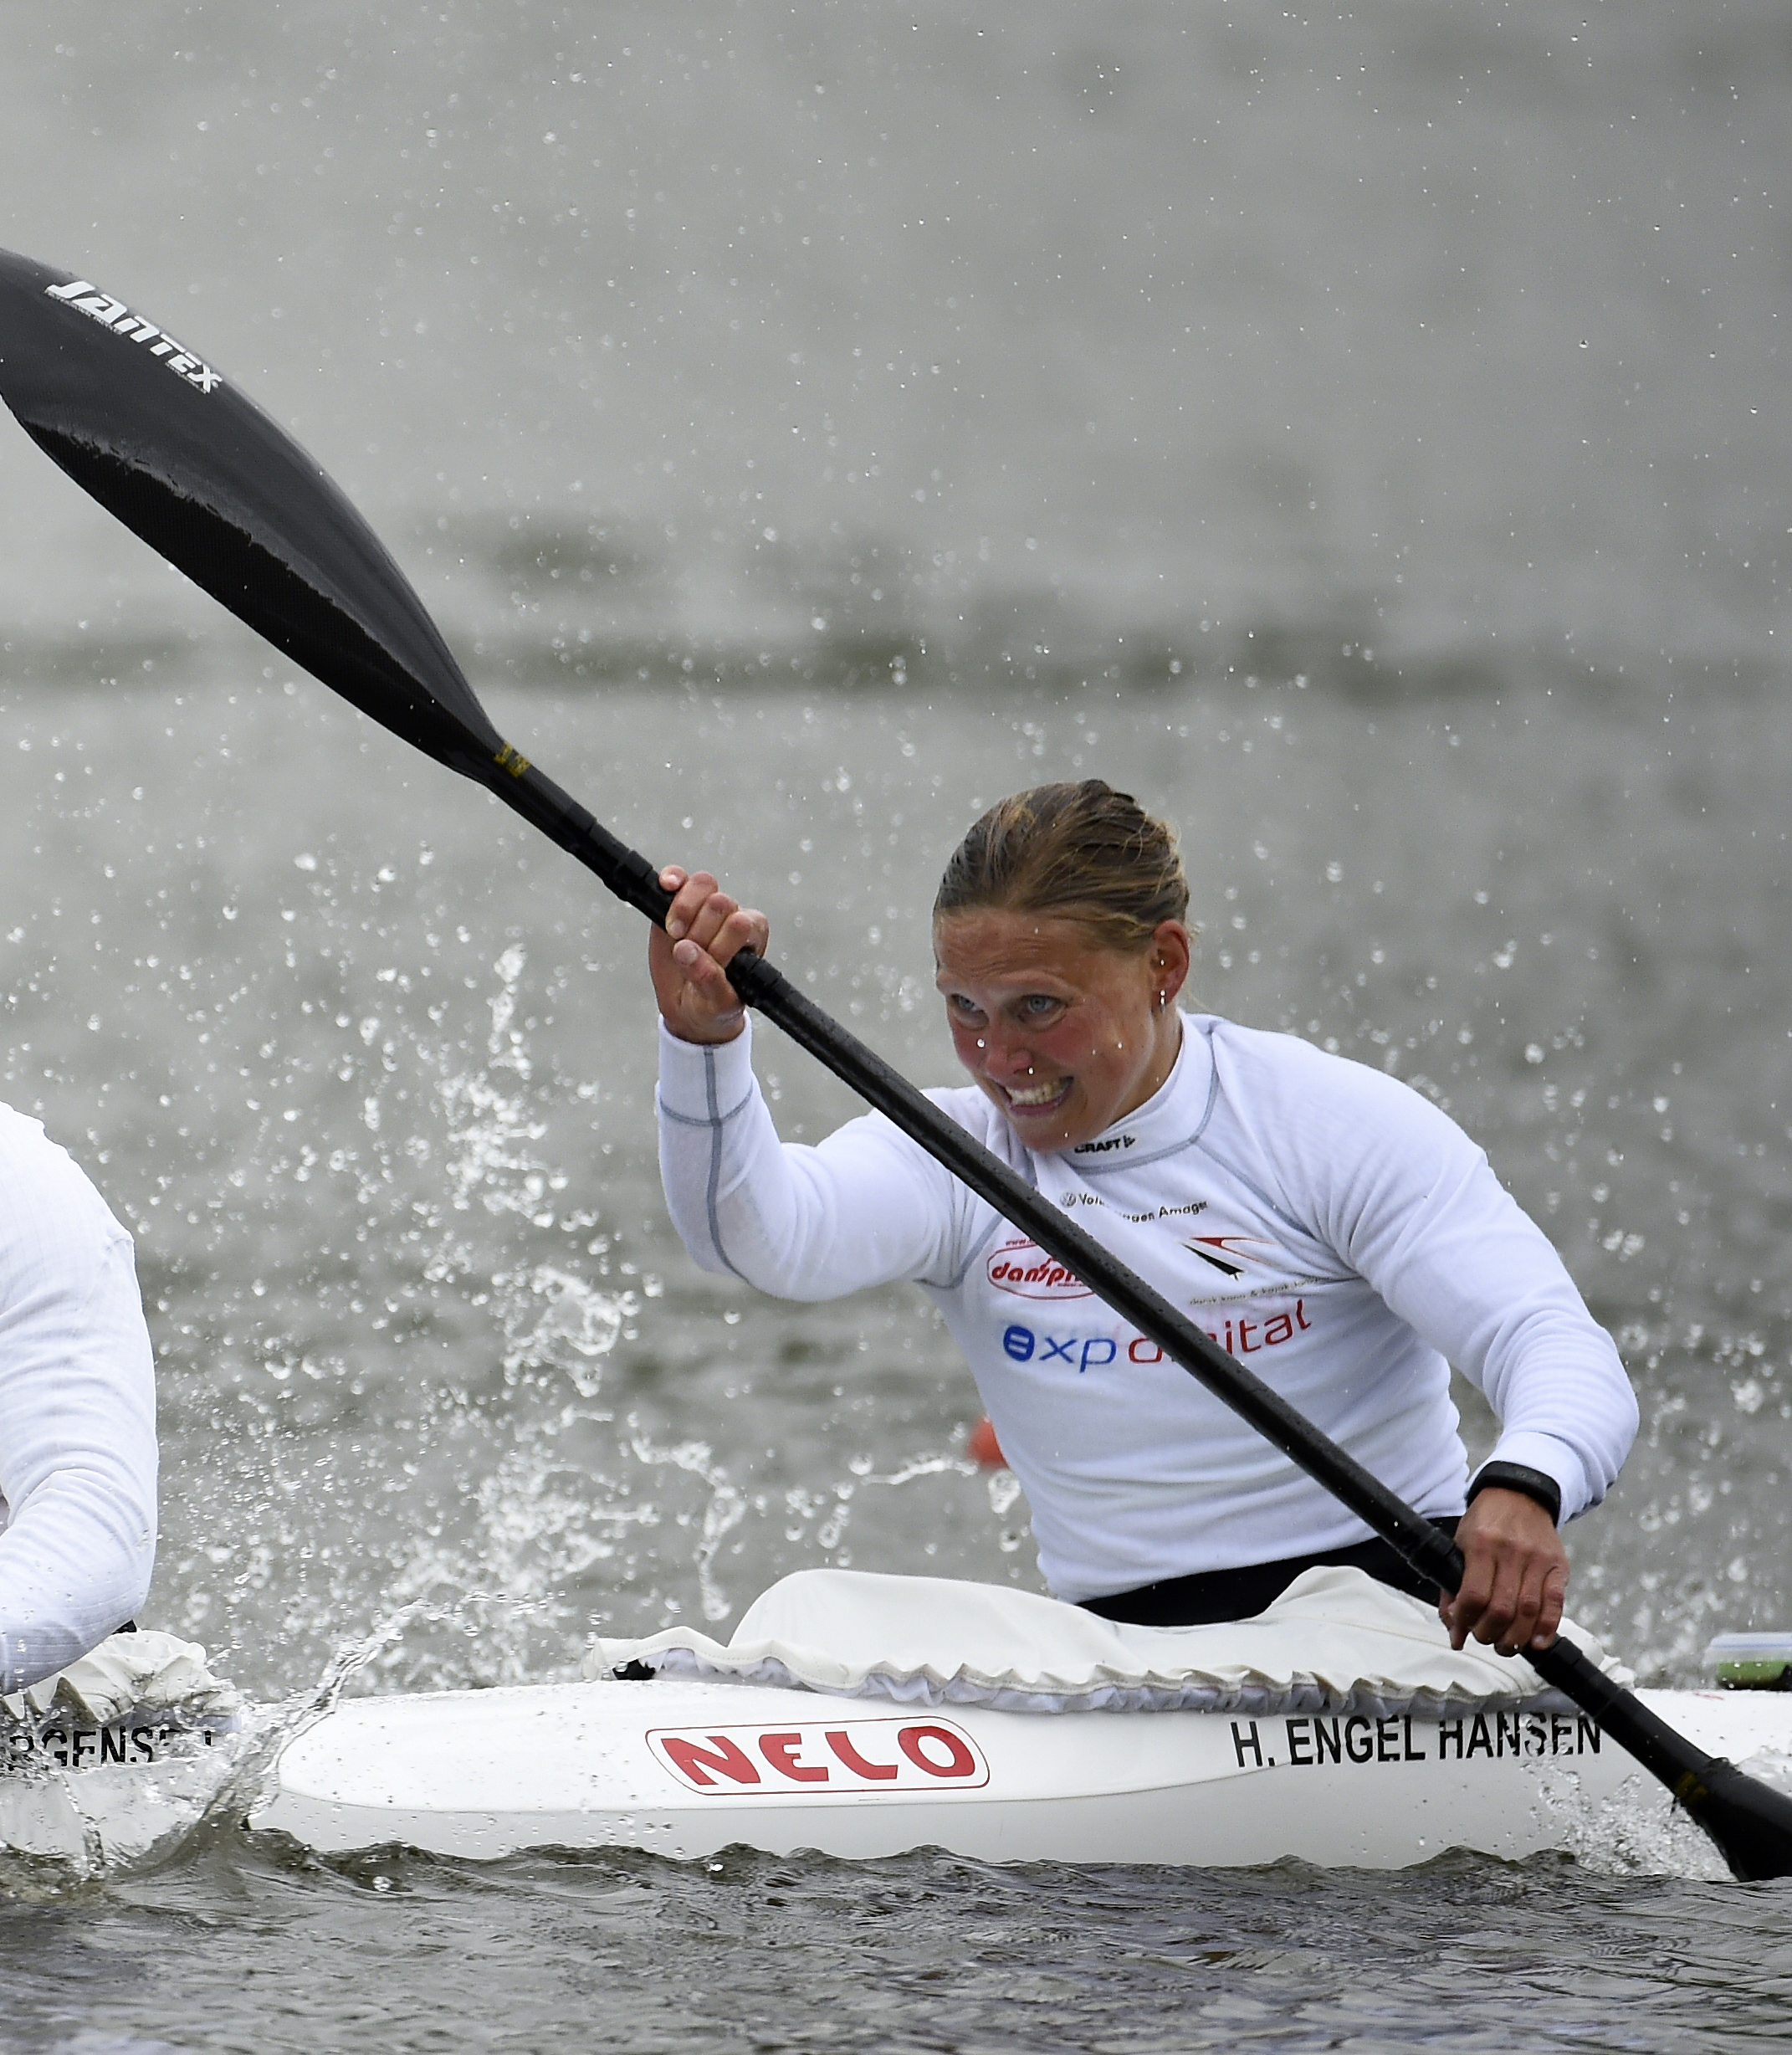 2015 ICF Canoe Sprint World Cup